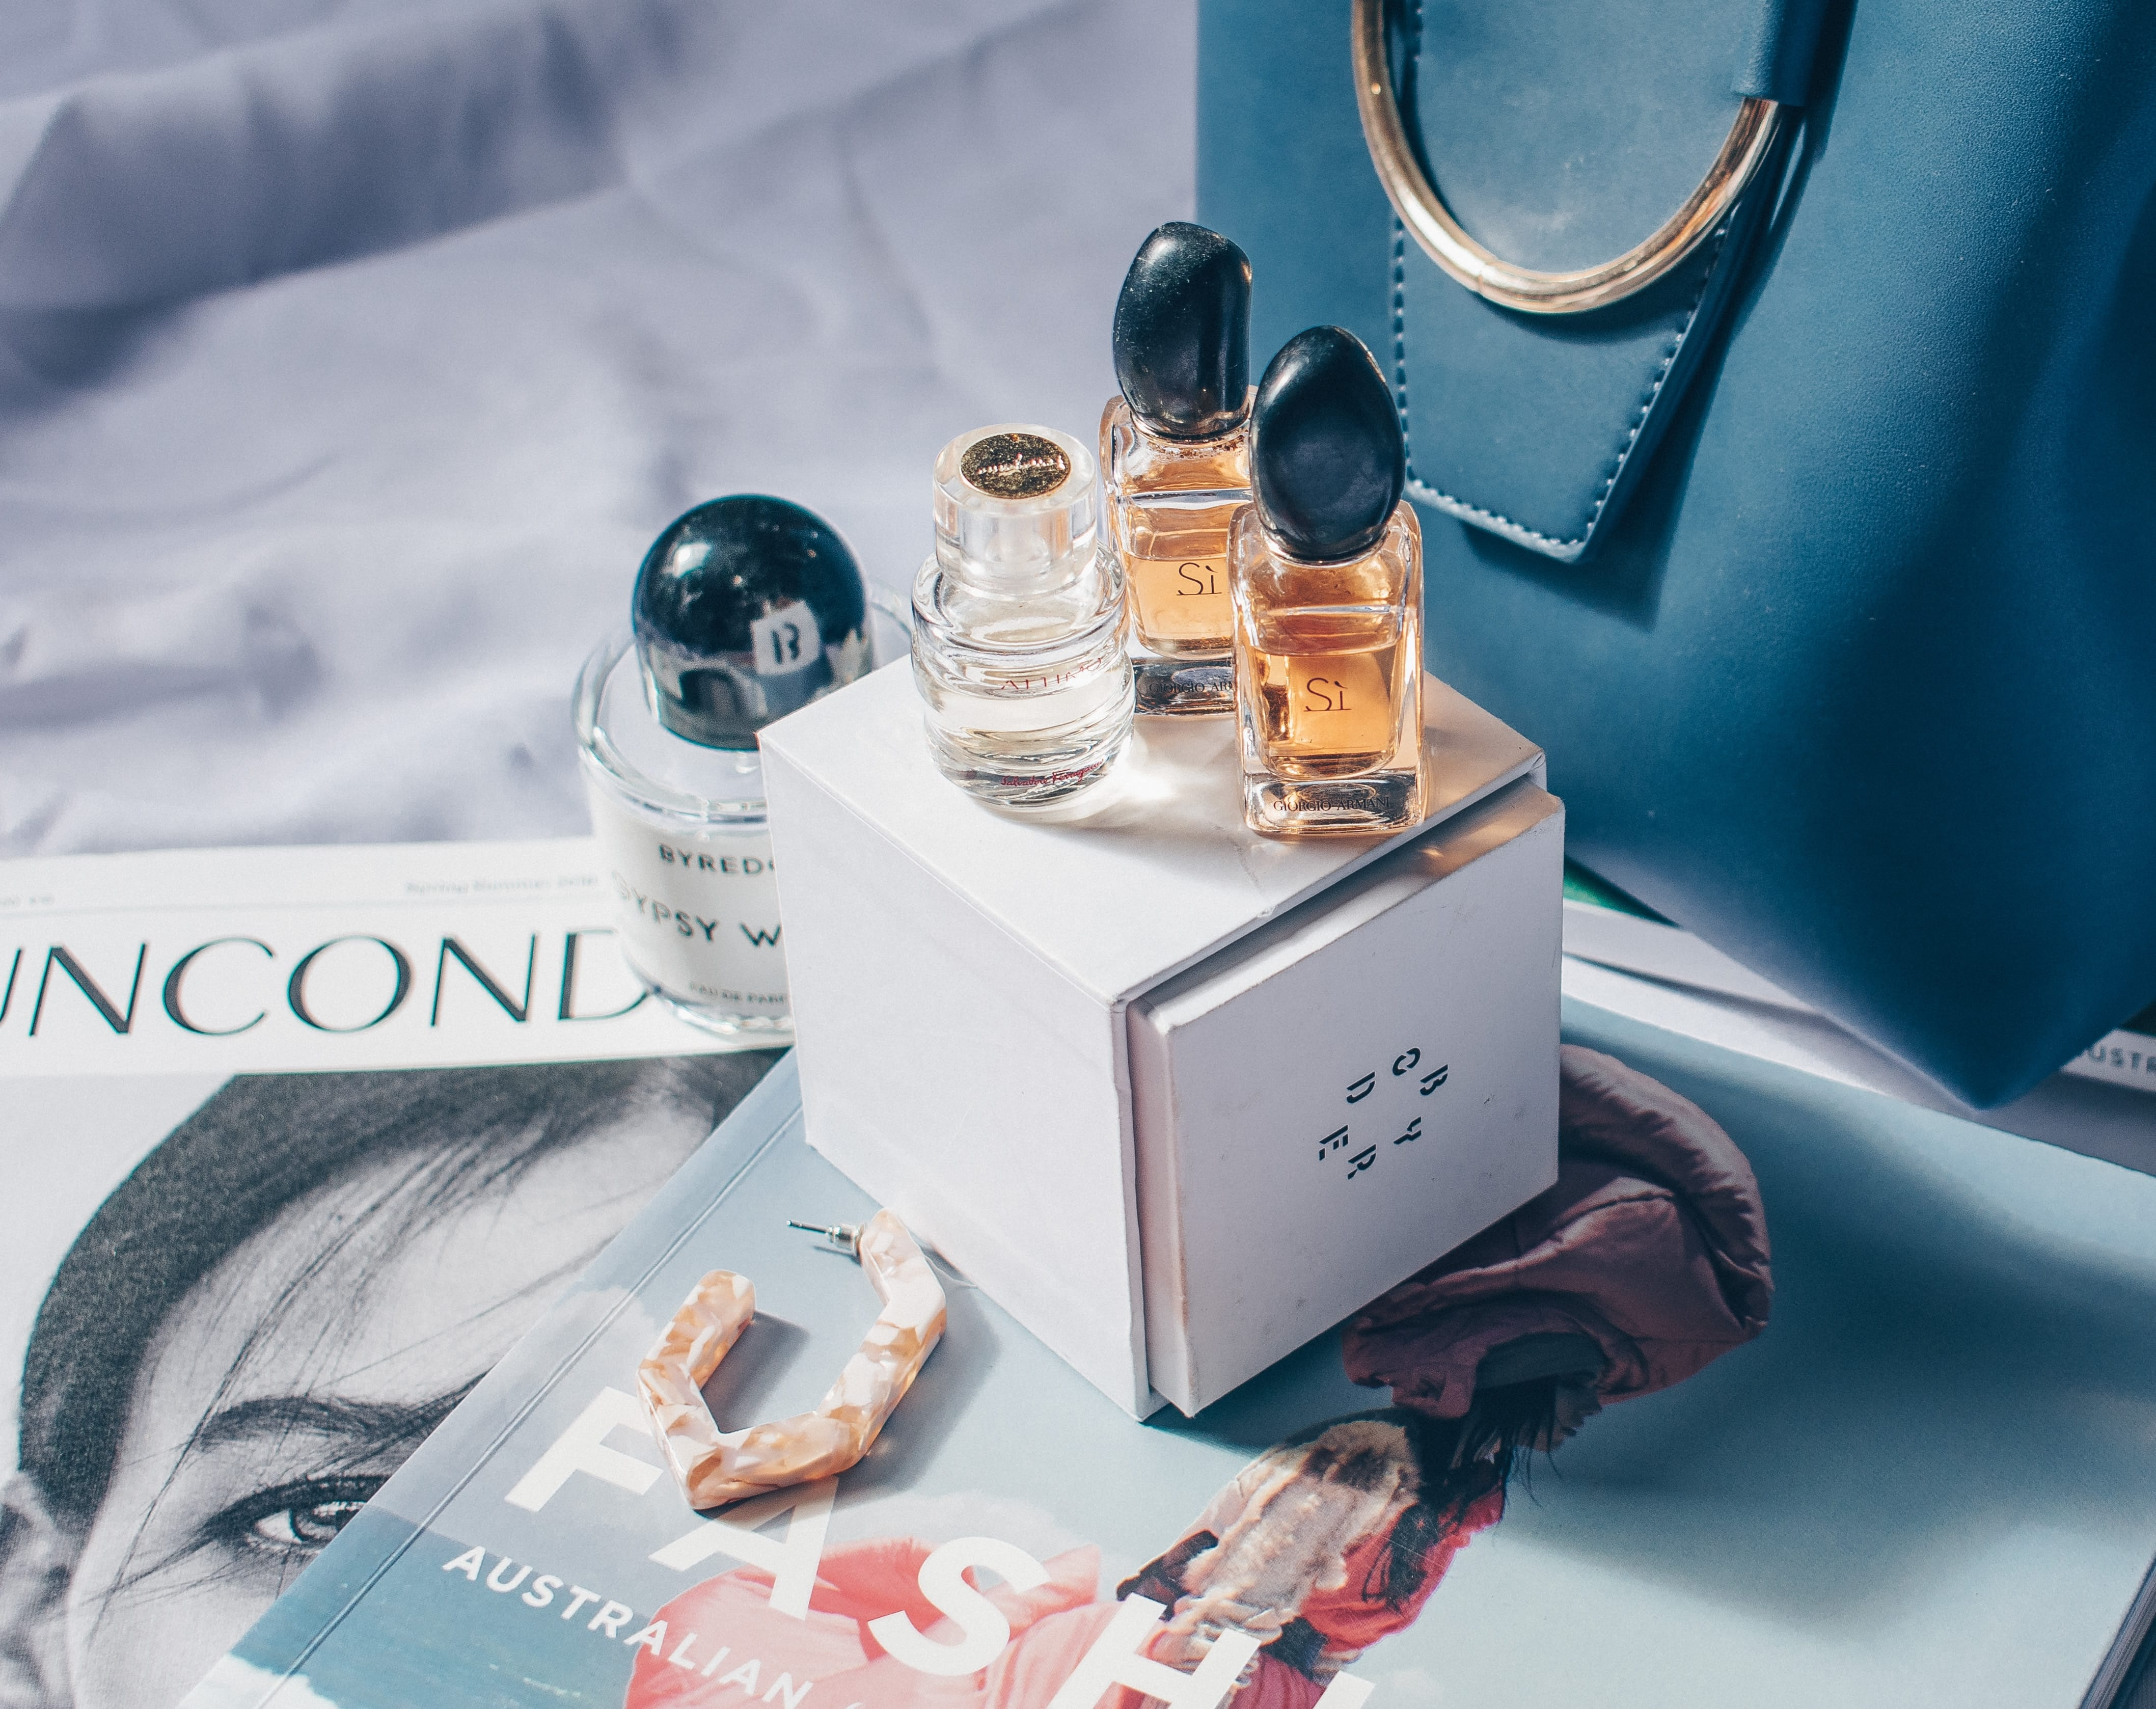 Miniature perfume bottles on top of a white box beside a sprawl of magazines.